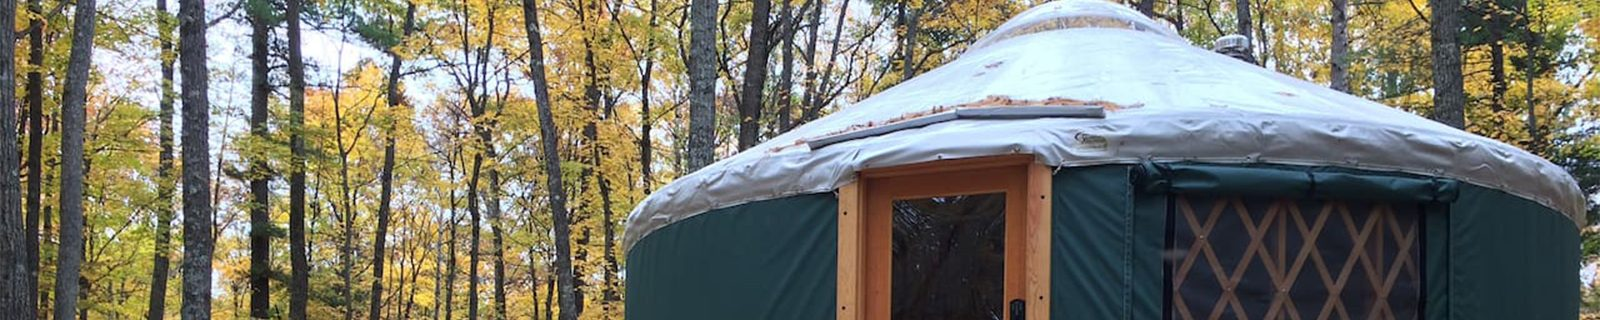 yurt Cable